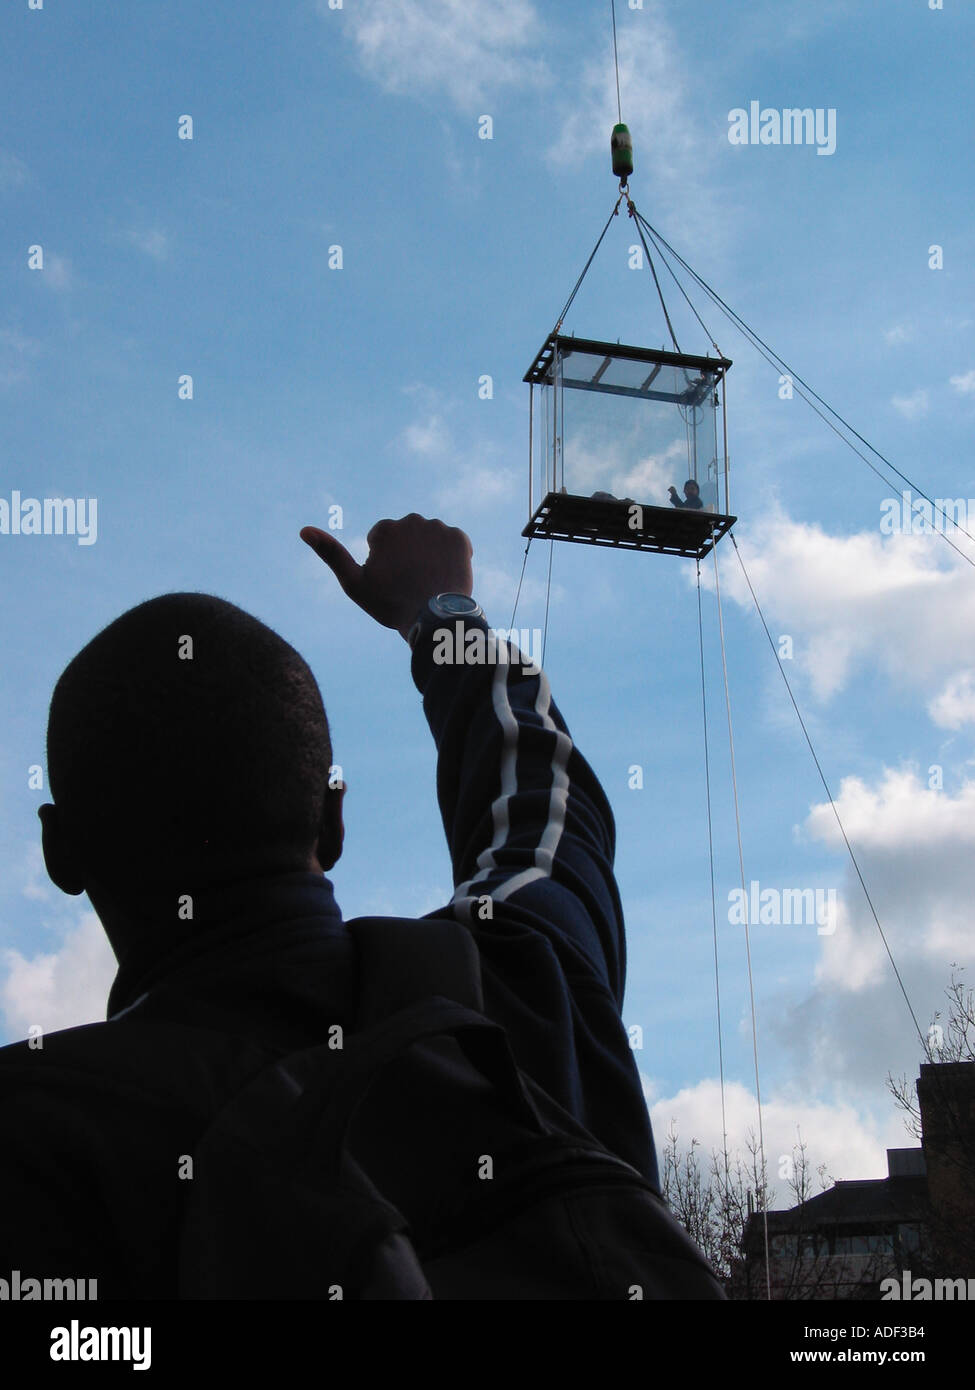 44 Days Suspended in a Plexi Glass Box David Blane Well Wishers Support Last Day Sunday 19th October 2003 London - Stock Image